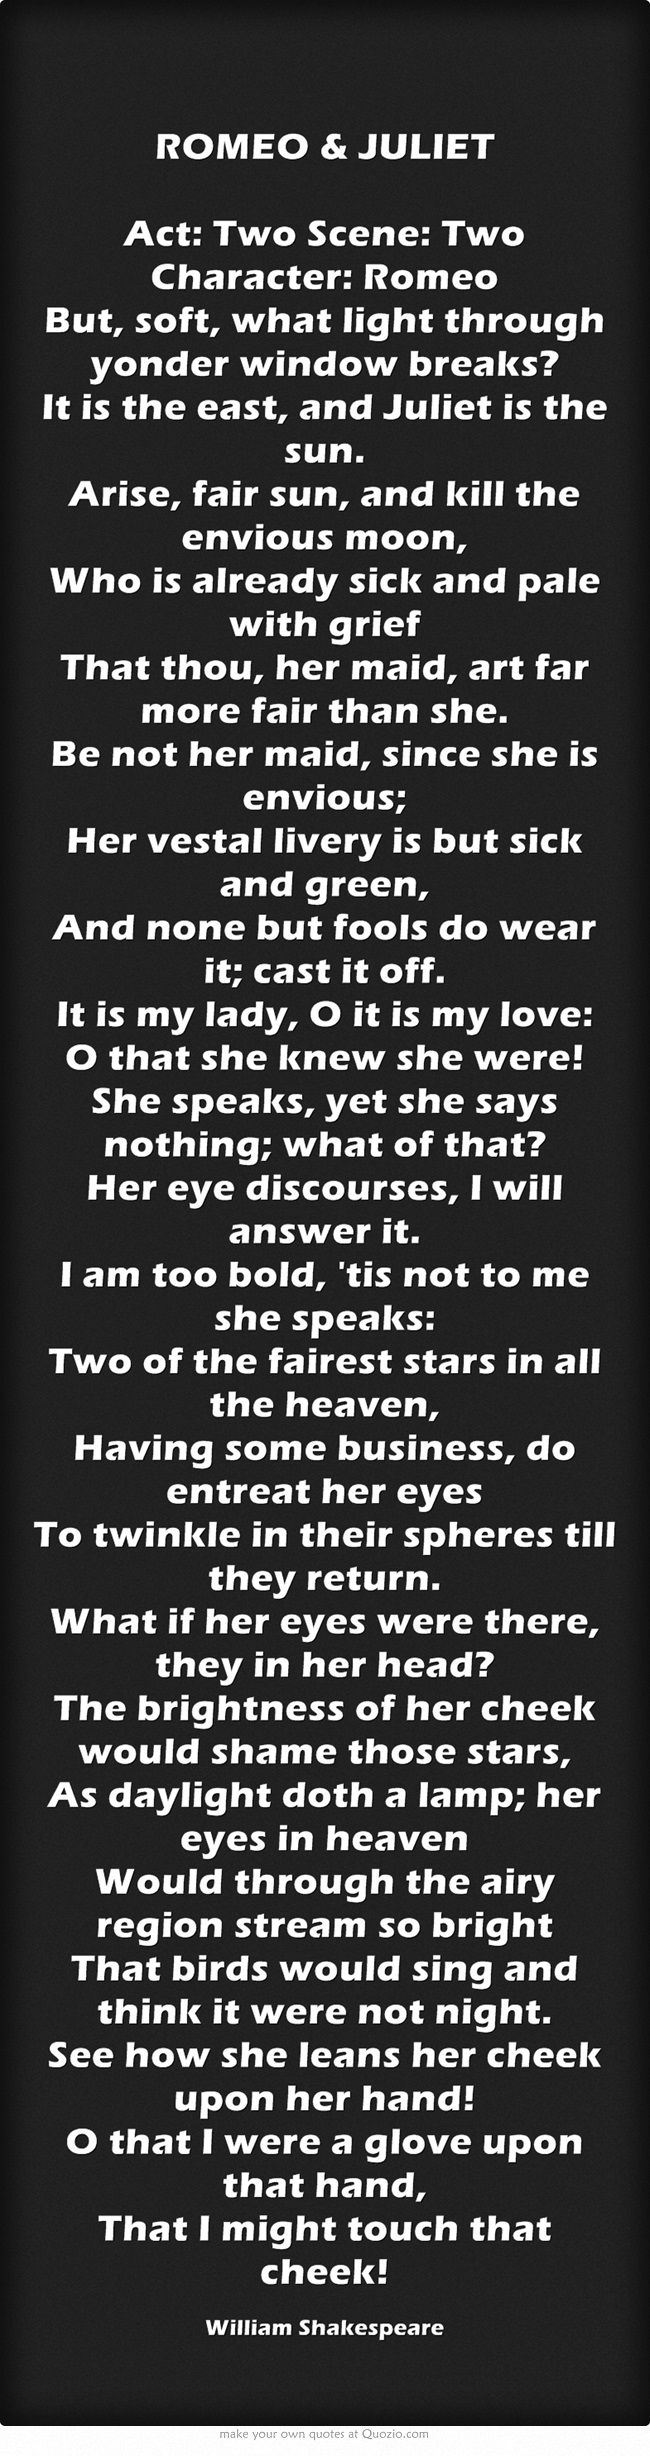 one of my absolute all time favorite quotes go girl seek romeo juliet act two scene two character romeo